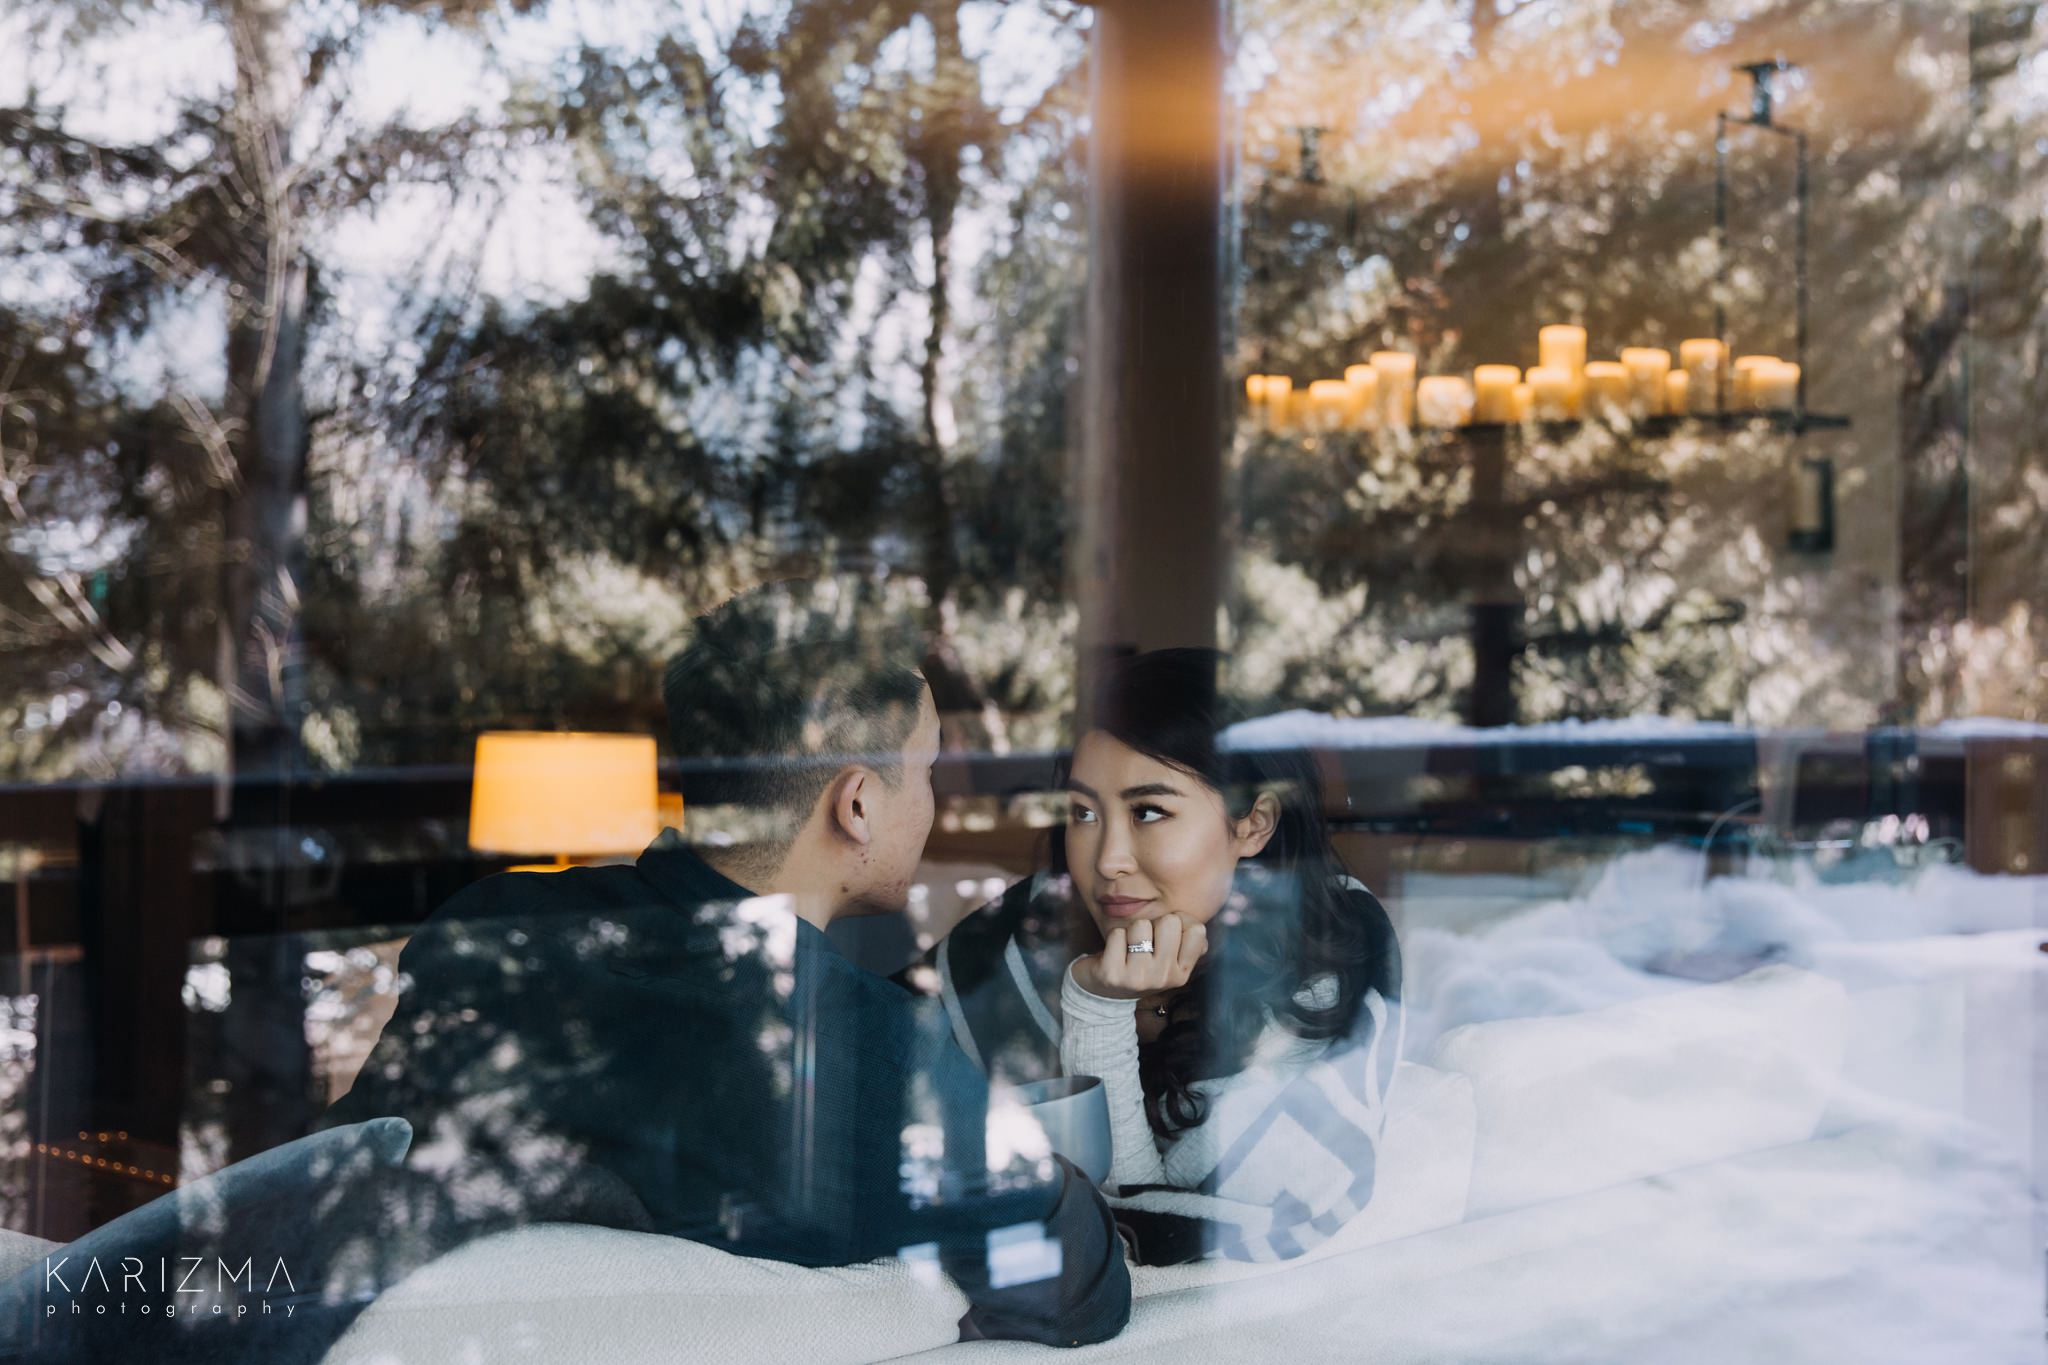 Portrait of a bride and groom taken through the window with beautiful reflection